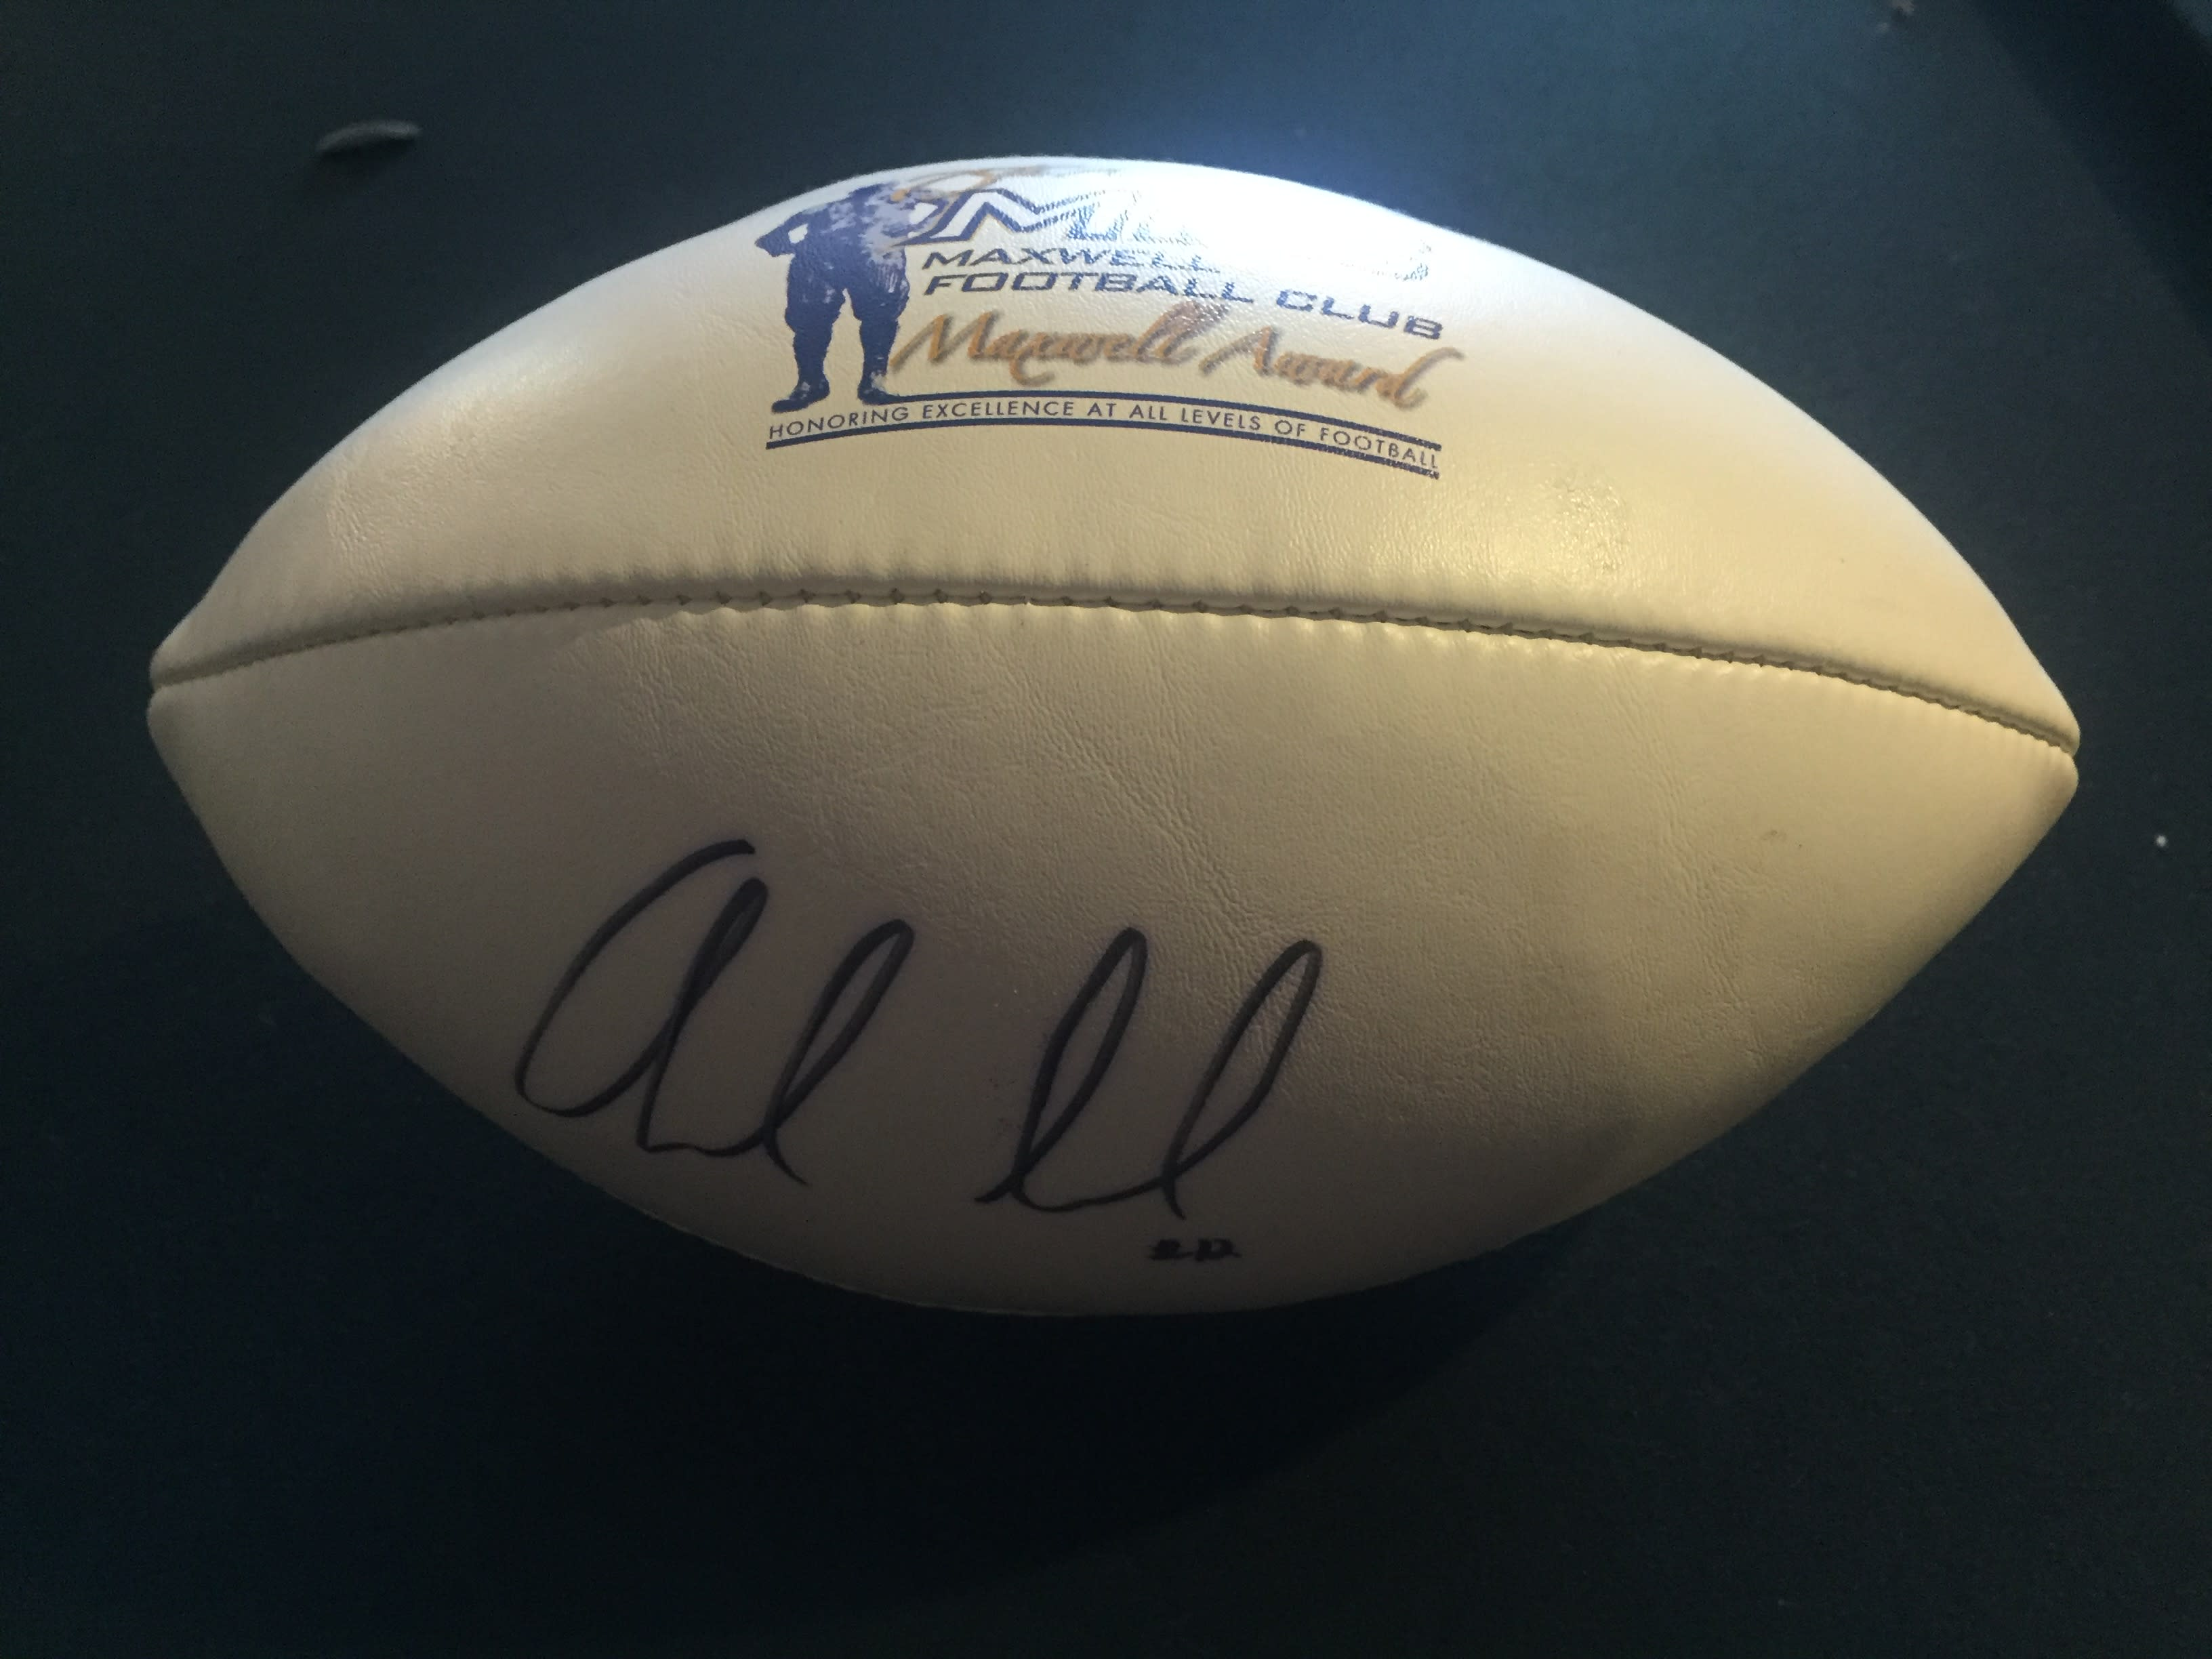 new arrival 9a916 04a80 ANDREW LUCK AUTOGRAPHED MAXWELL CLUB FOOTBALL